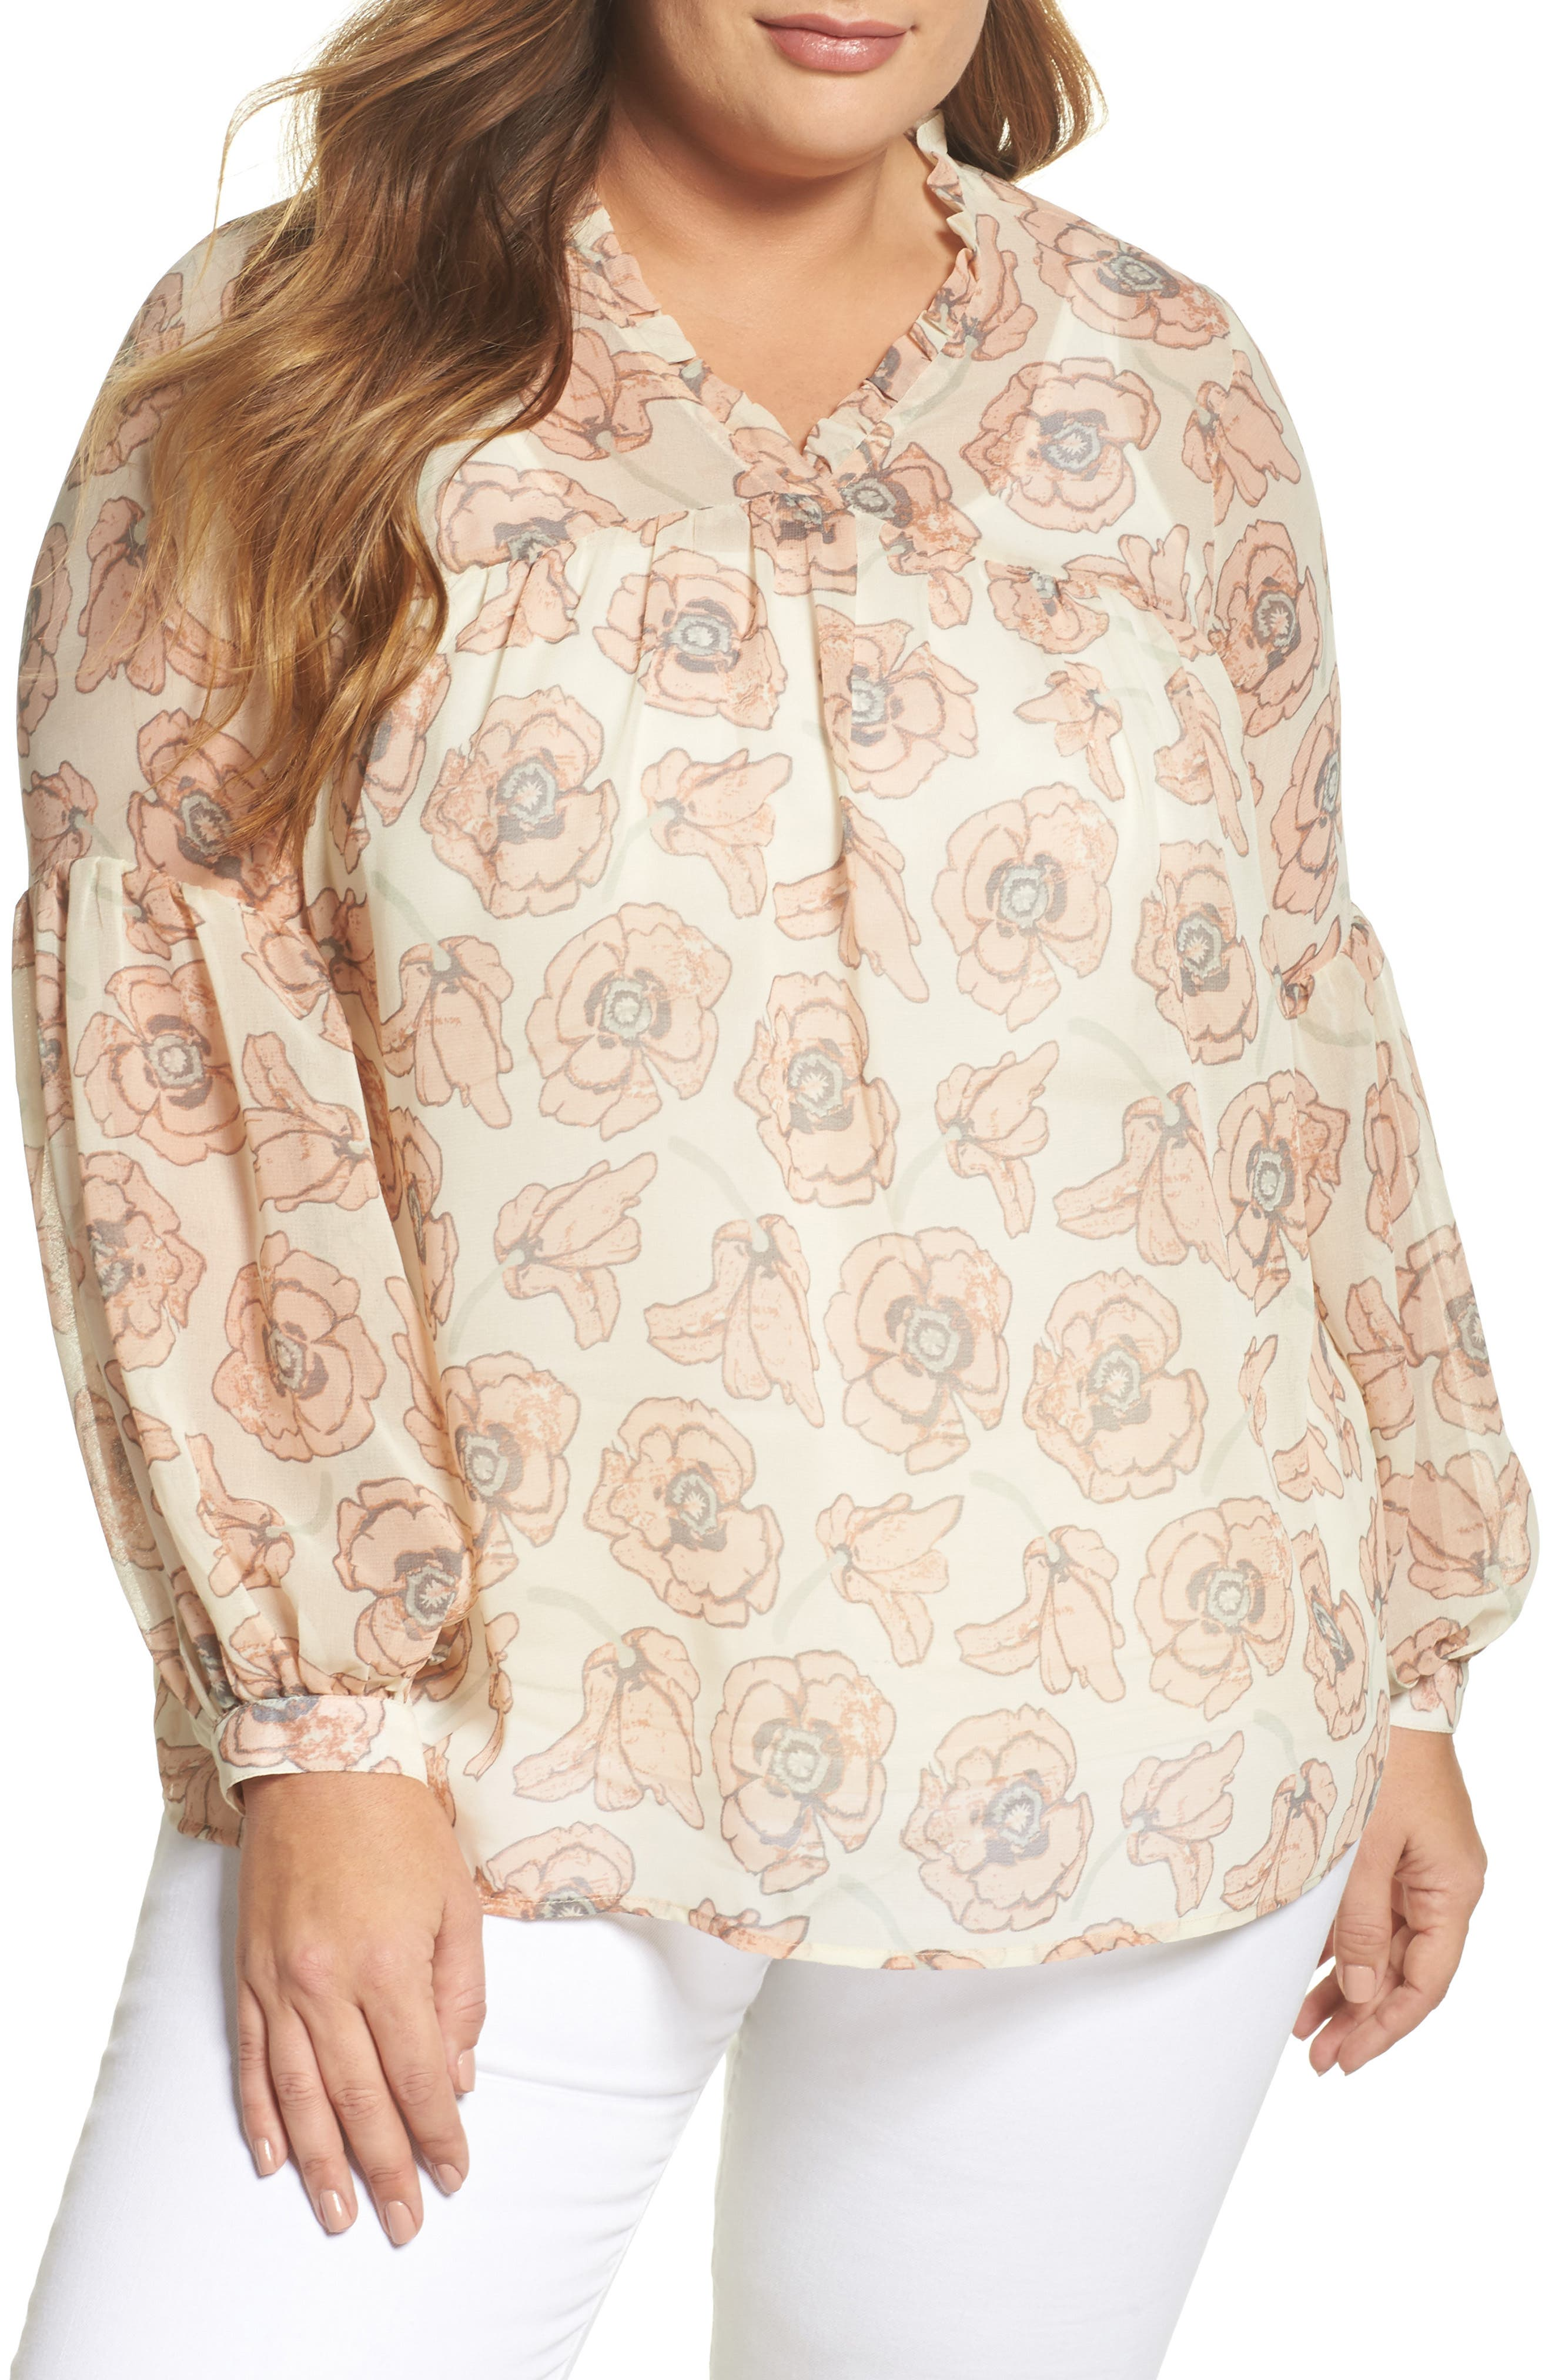 Exploded Floral Top,                         Main,                         color, Pink Multi